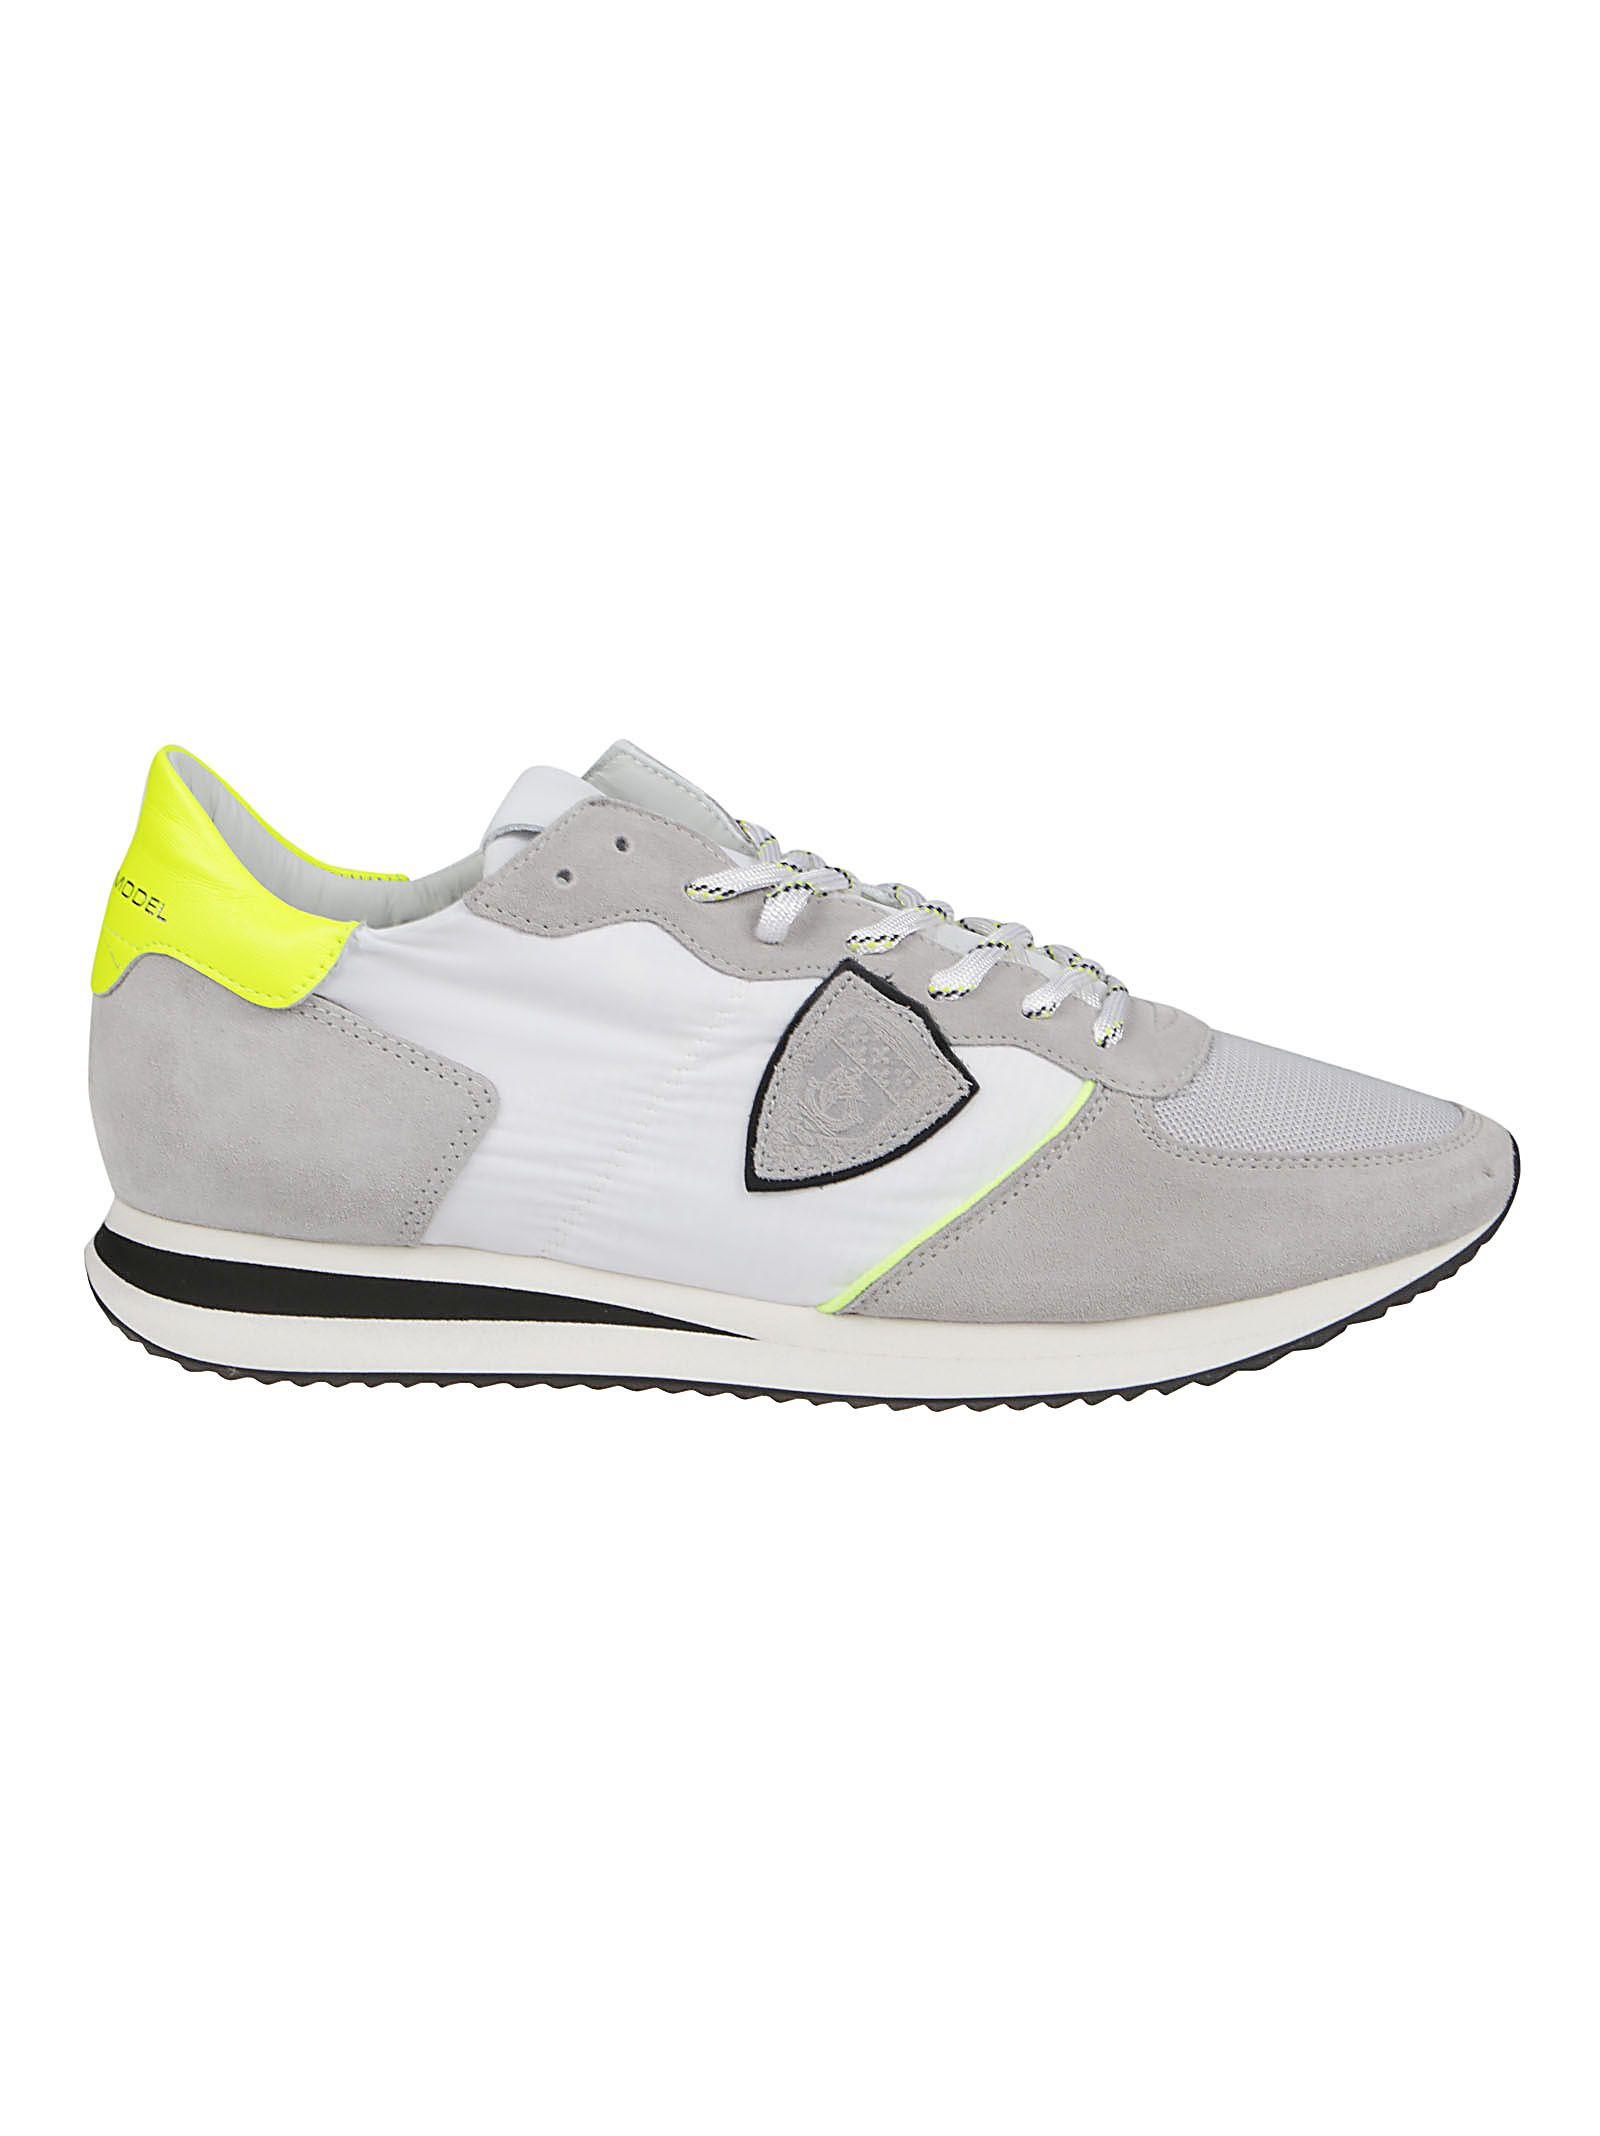 Philippe Model Leathers PHILIPPE MODEL MEN'S TZLUWP11 GREY OTHER MATERIALS SNEAKERS